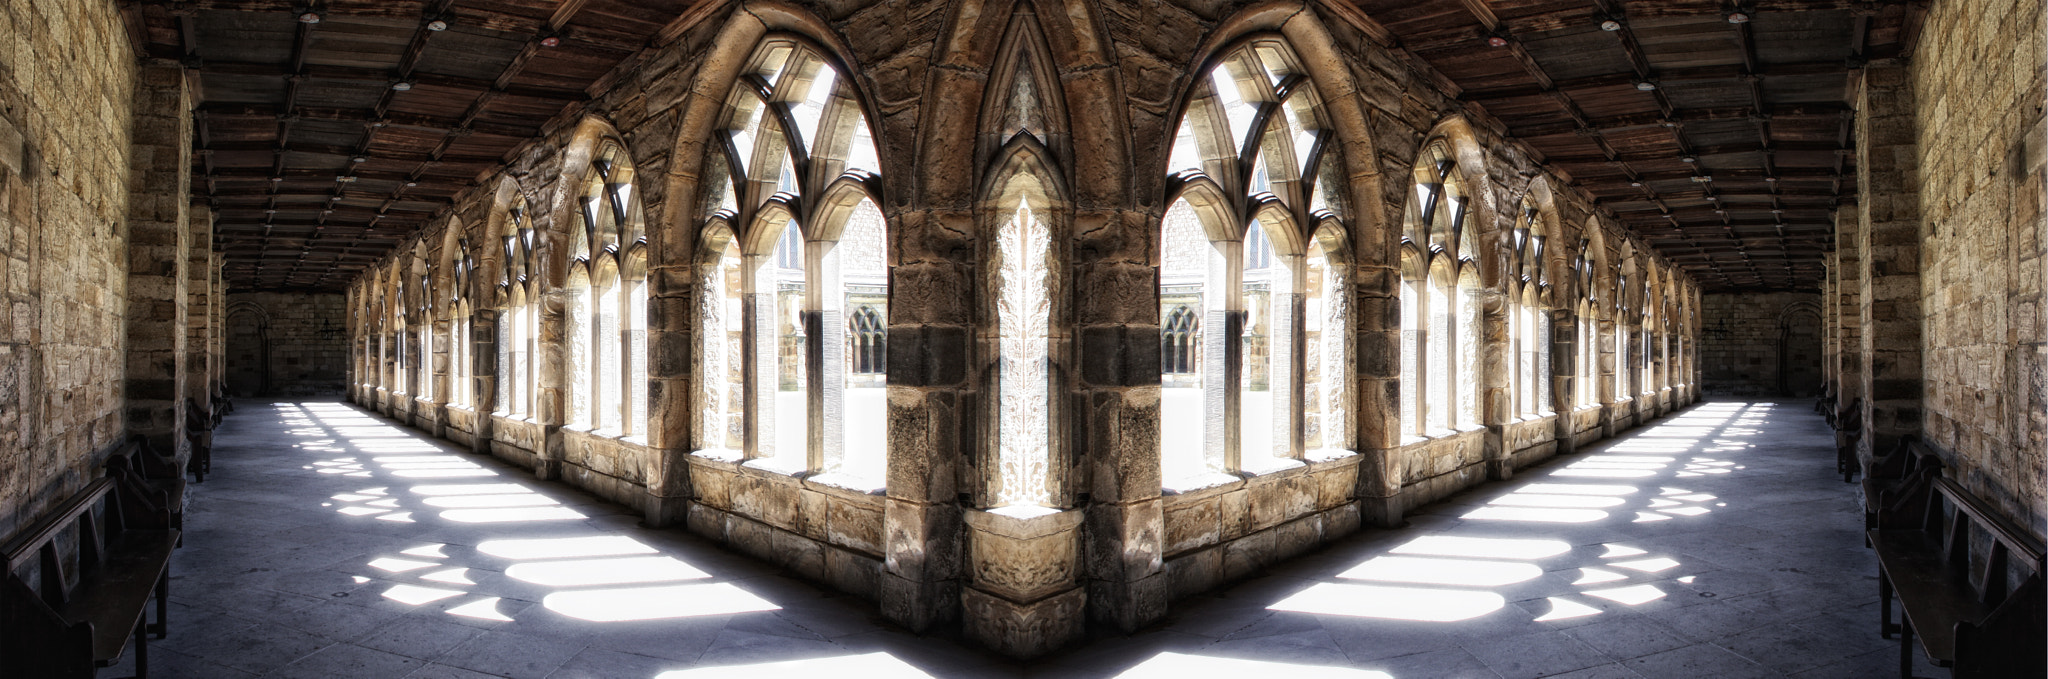 Photograph The Cloisters by Robert Armstrong on 500px